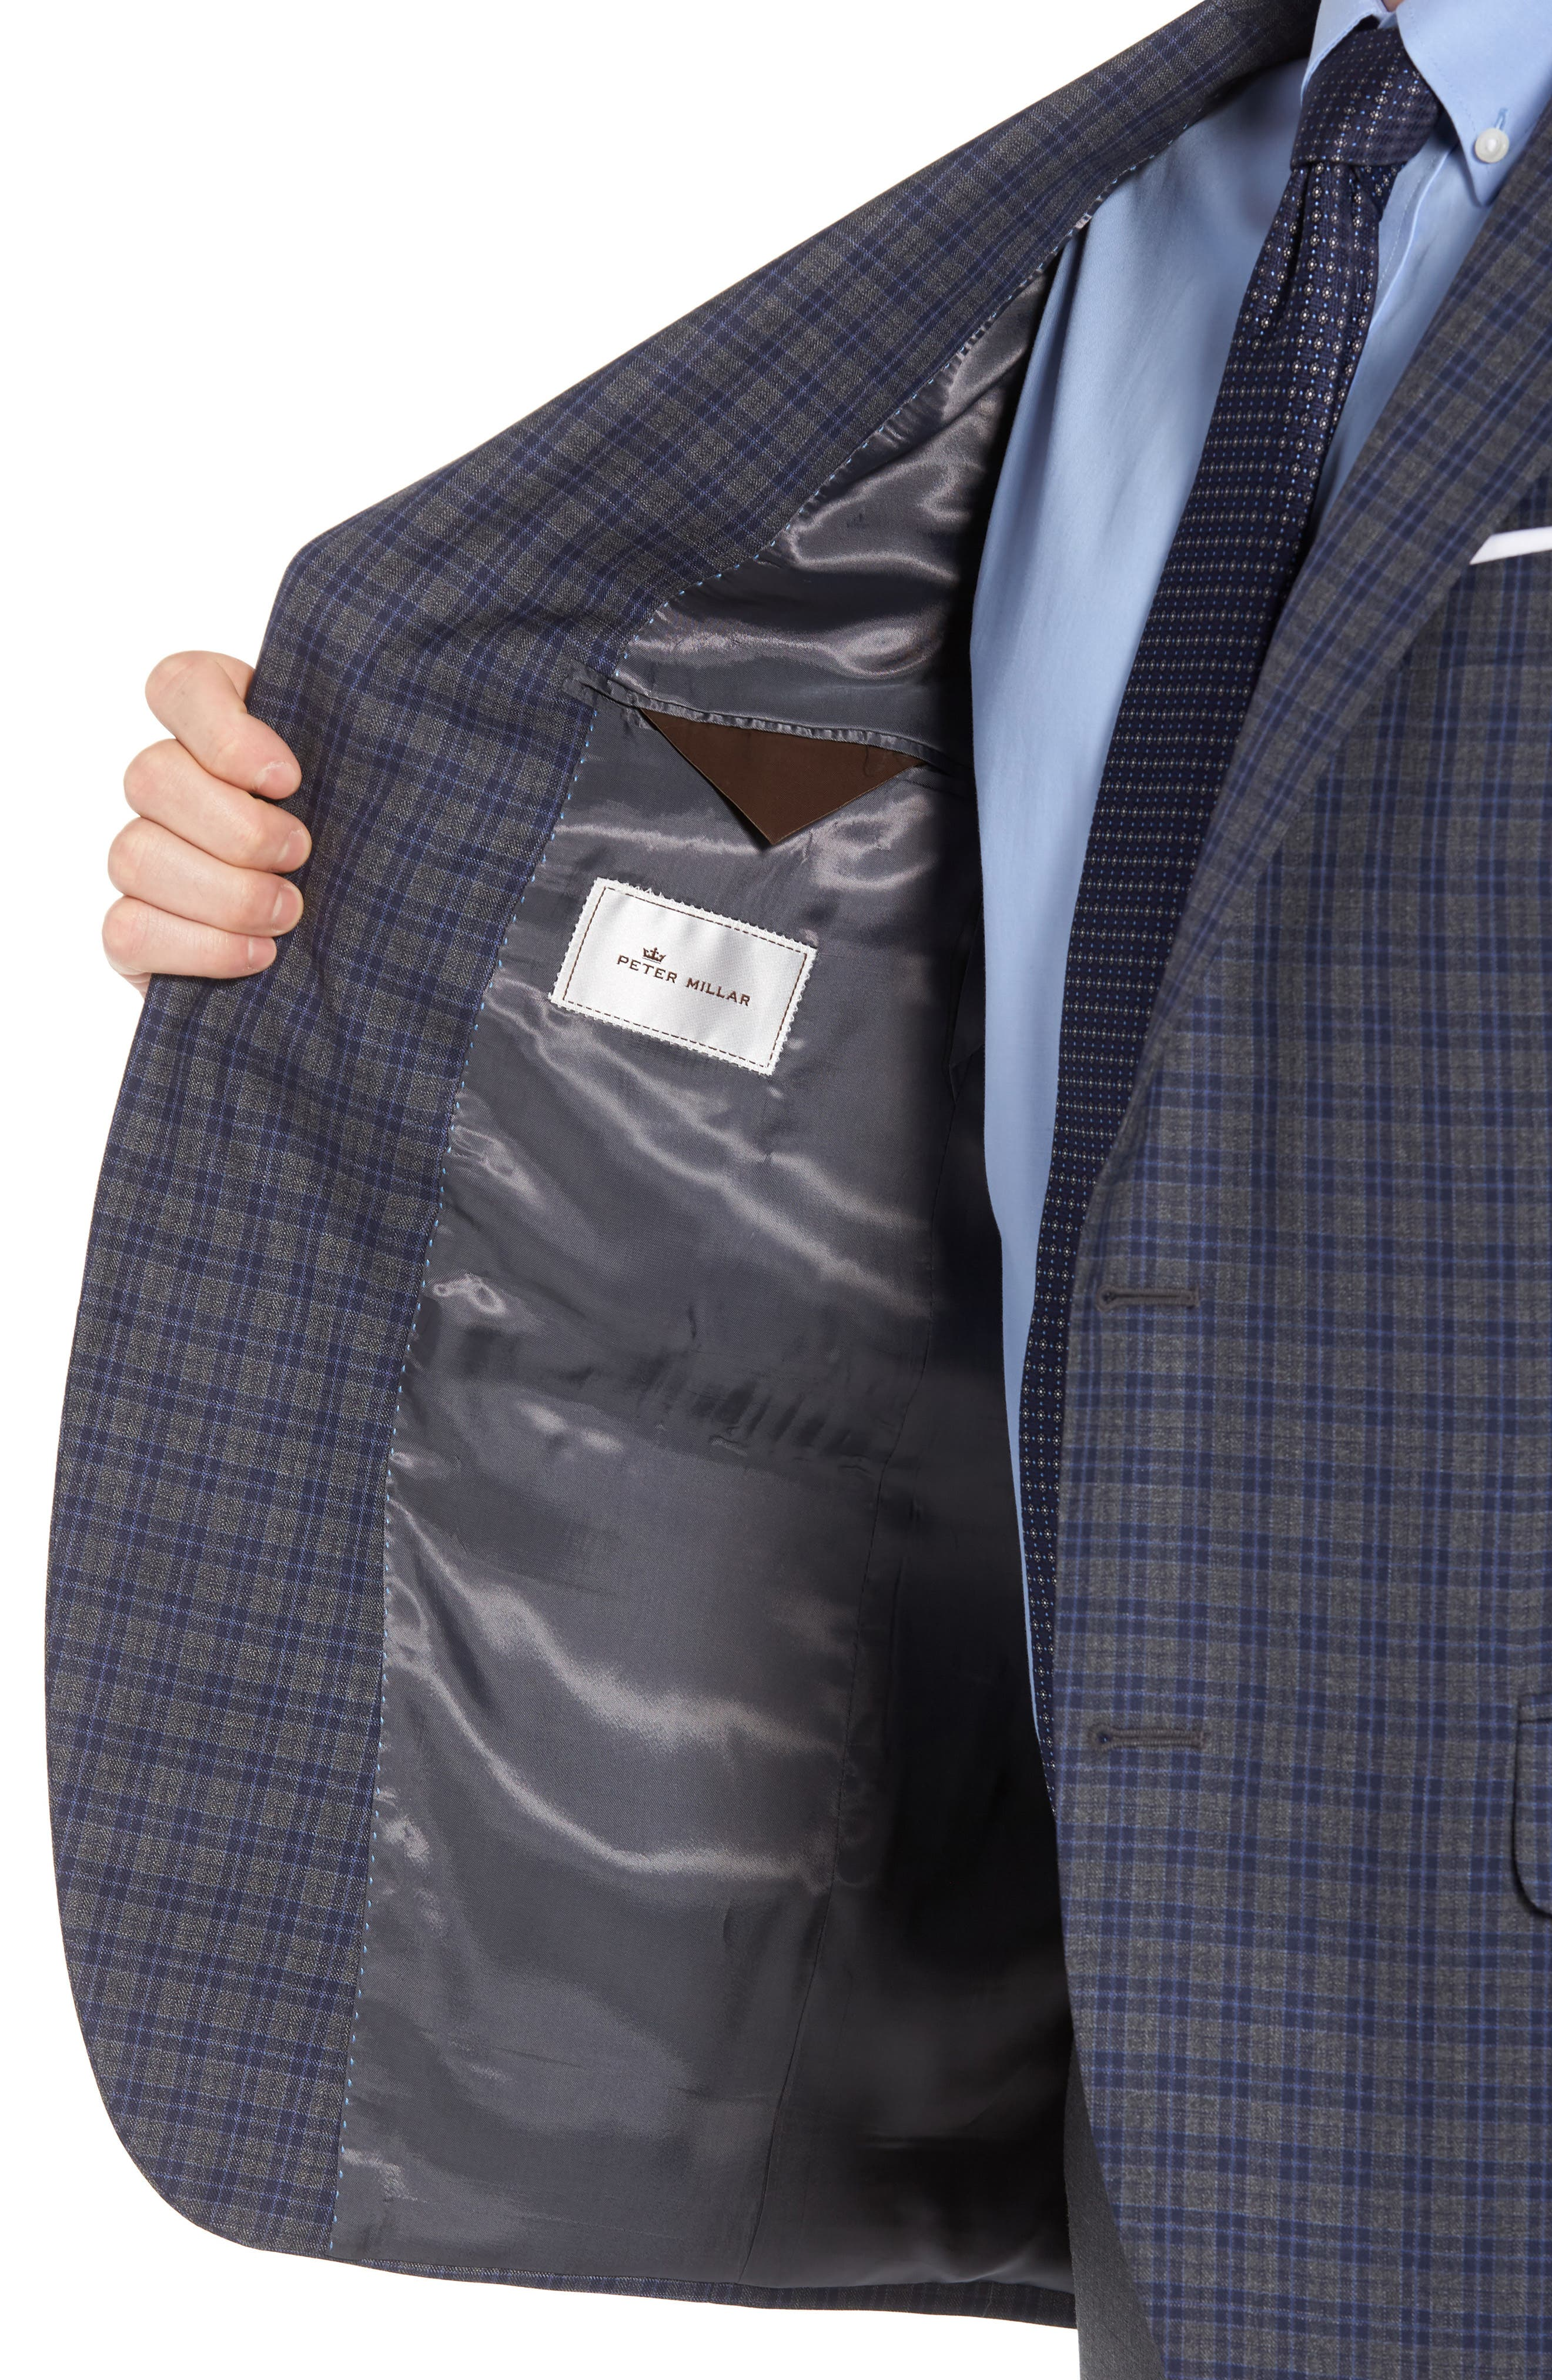 Classic Fit Check Wool Sport Coat,                             Alternate thumbnail 4, color,                             Grey/Blue